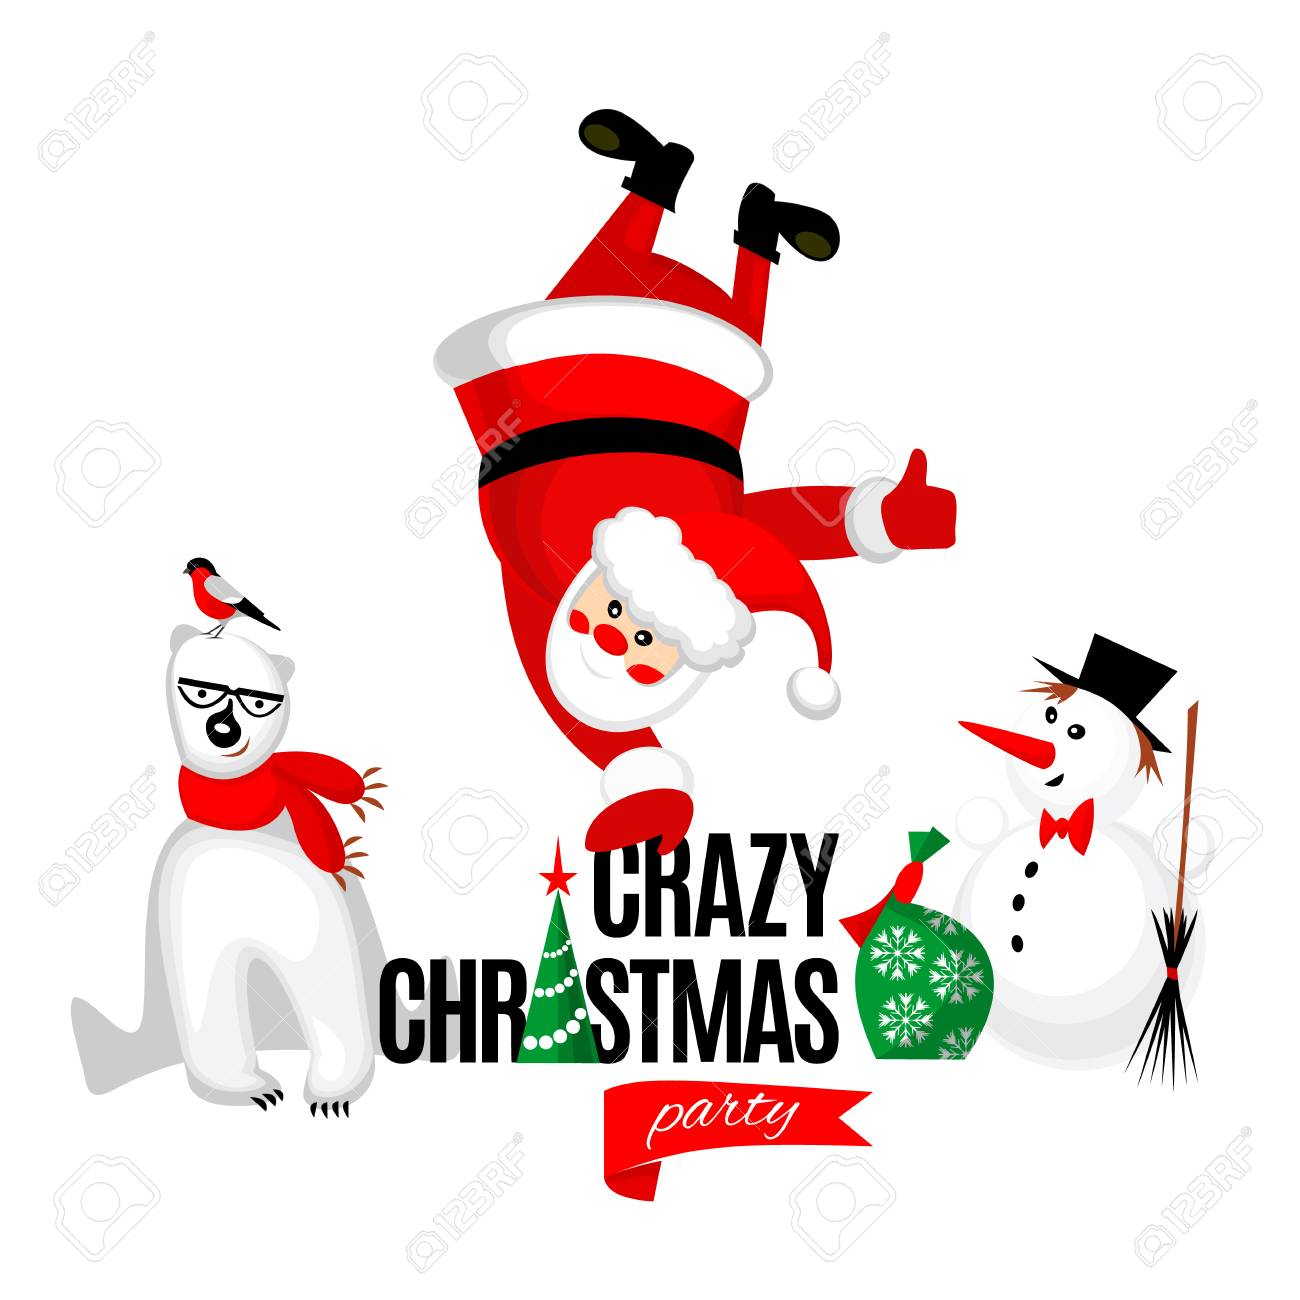 c5567054c44a8 Crazy Christmas party poster. Merry Christmas characters  Santa Claus